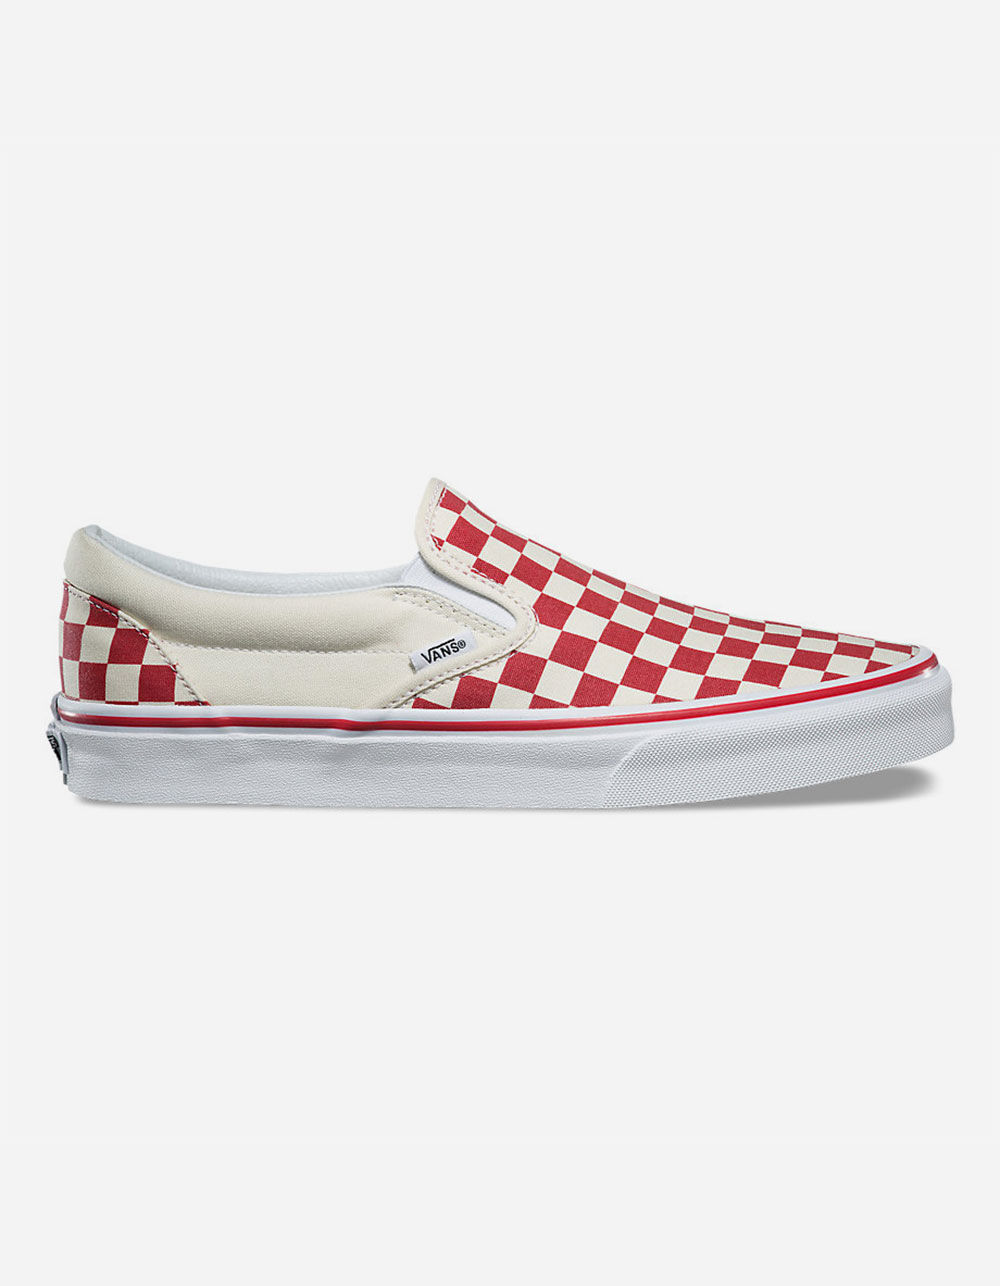 VANS PRIMARY CHECK SLIP-ON RED & WHITE SHOES